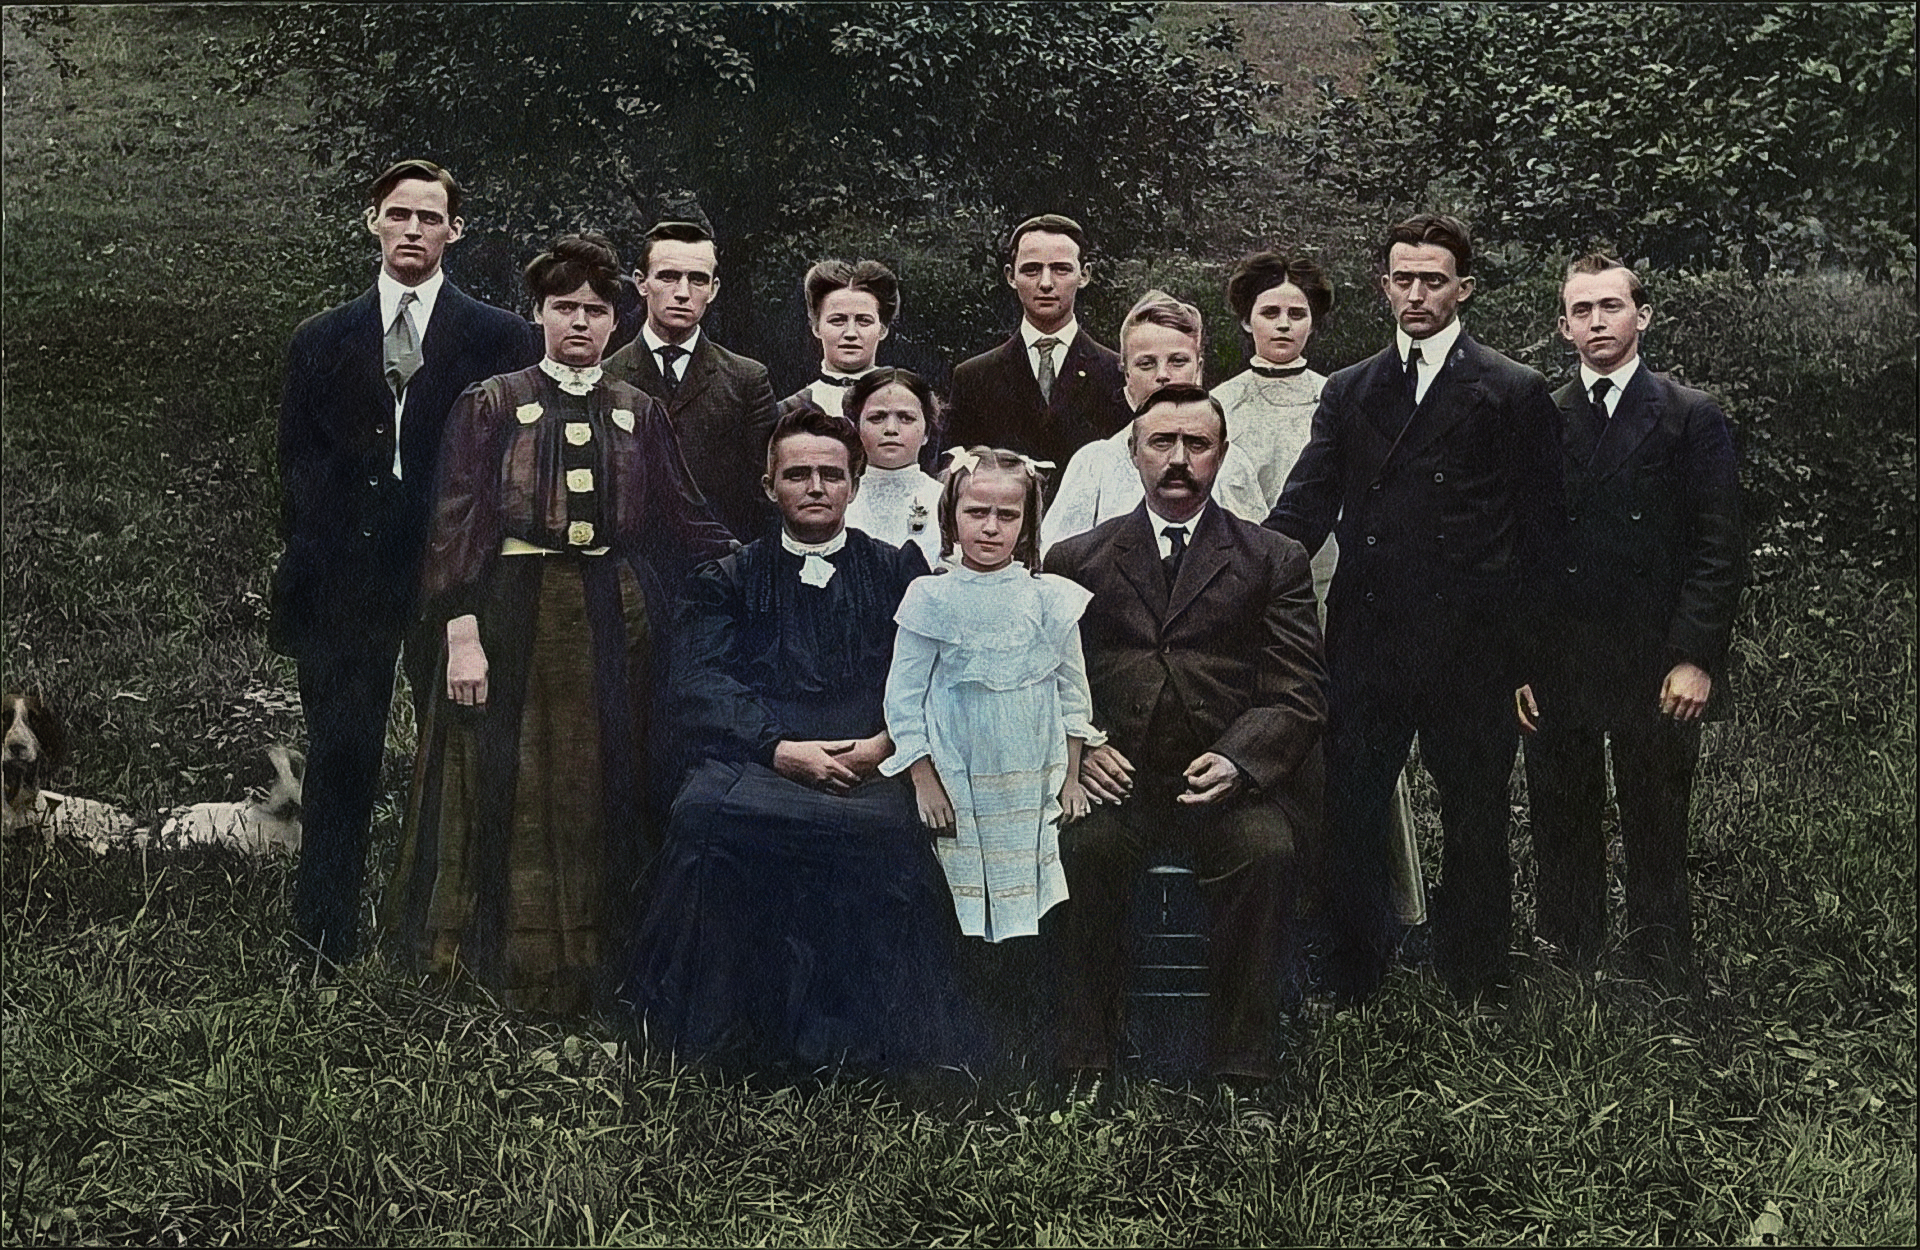 The Rhoads Family of Cambria County, Dunlo, PA (abt. 1905)